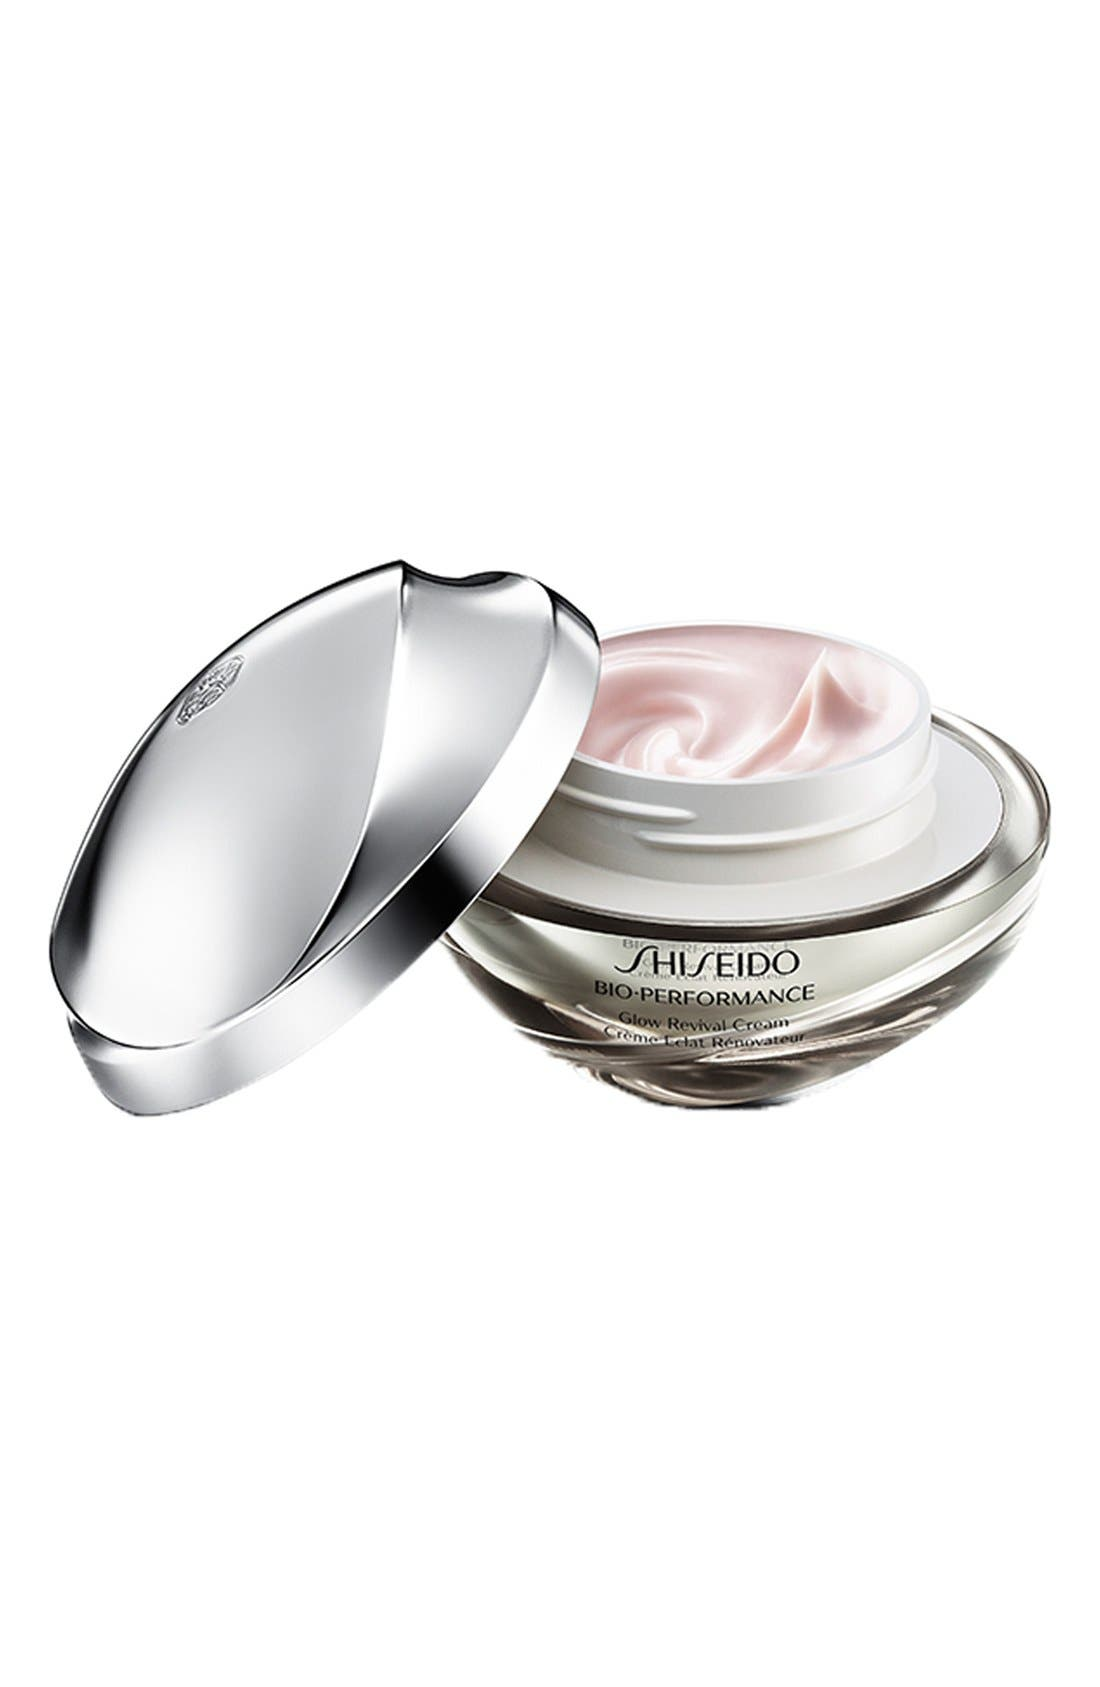 Shiseido 'Bio-Performance' Glow Revival Cream